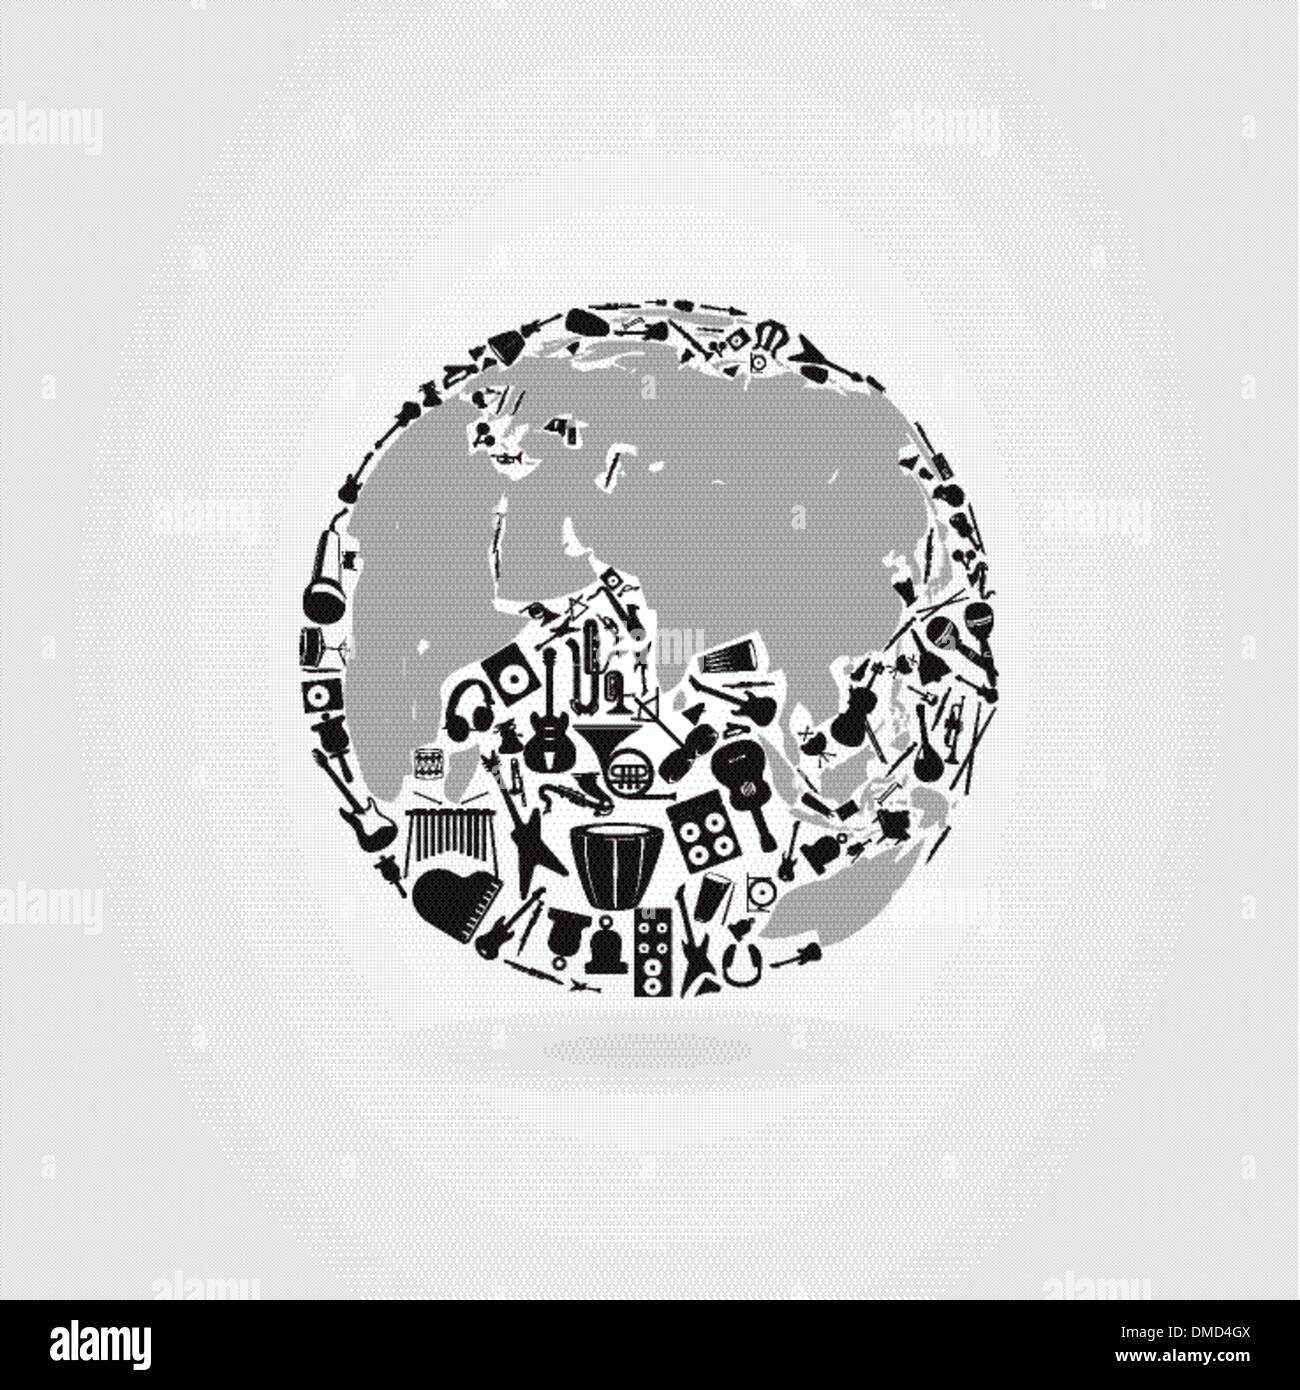 Music a planet - Stock Image